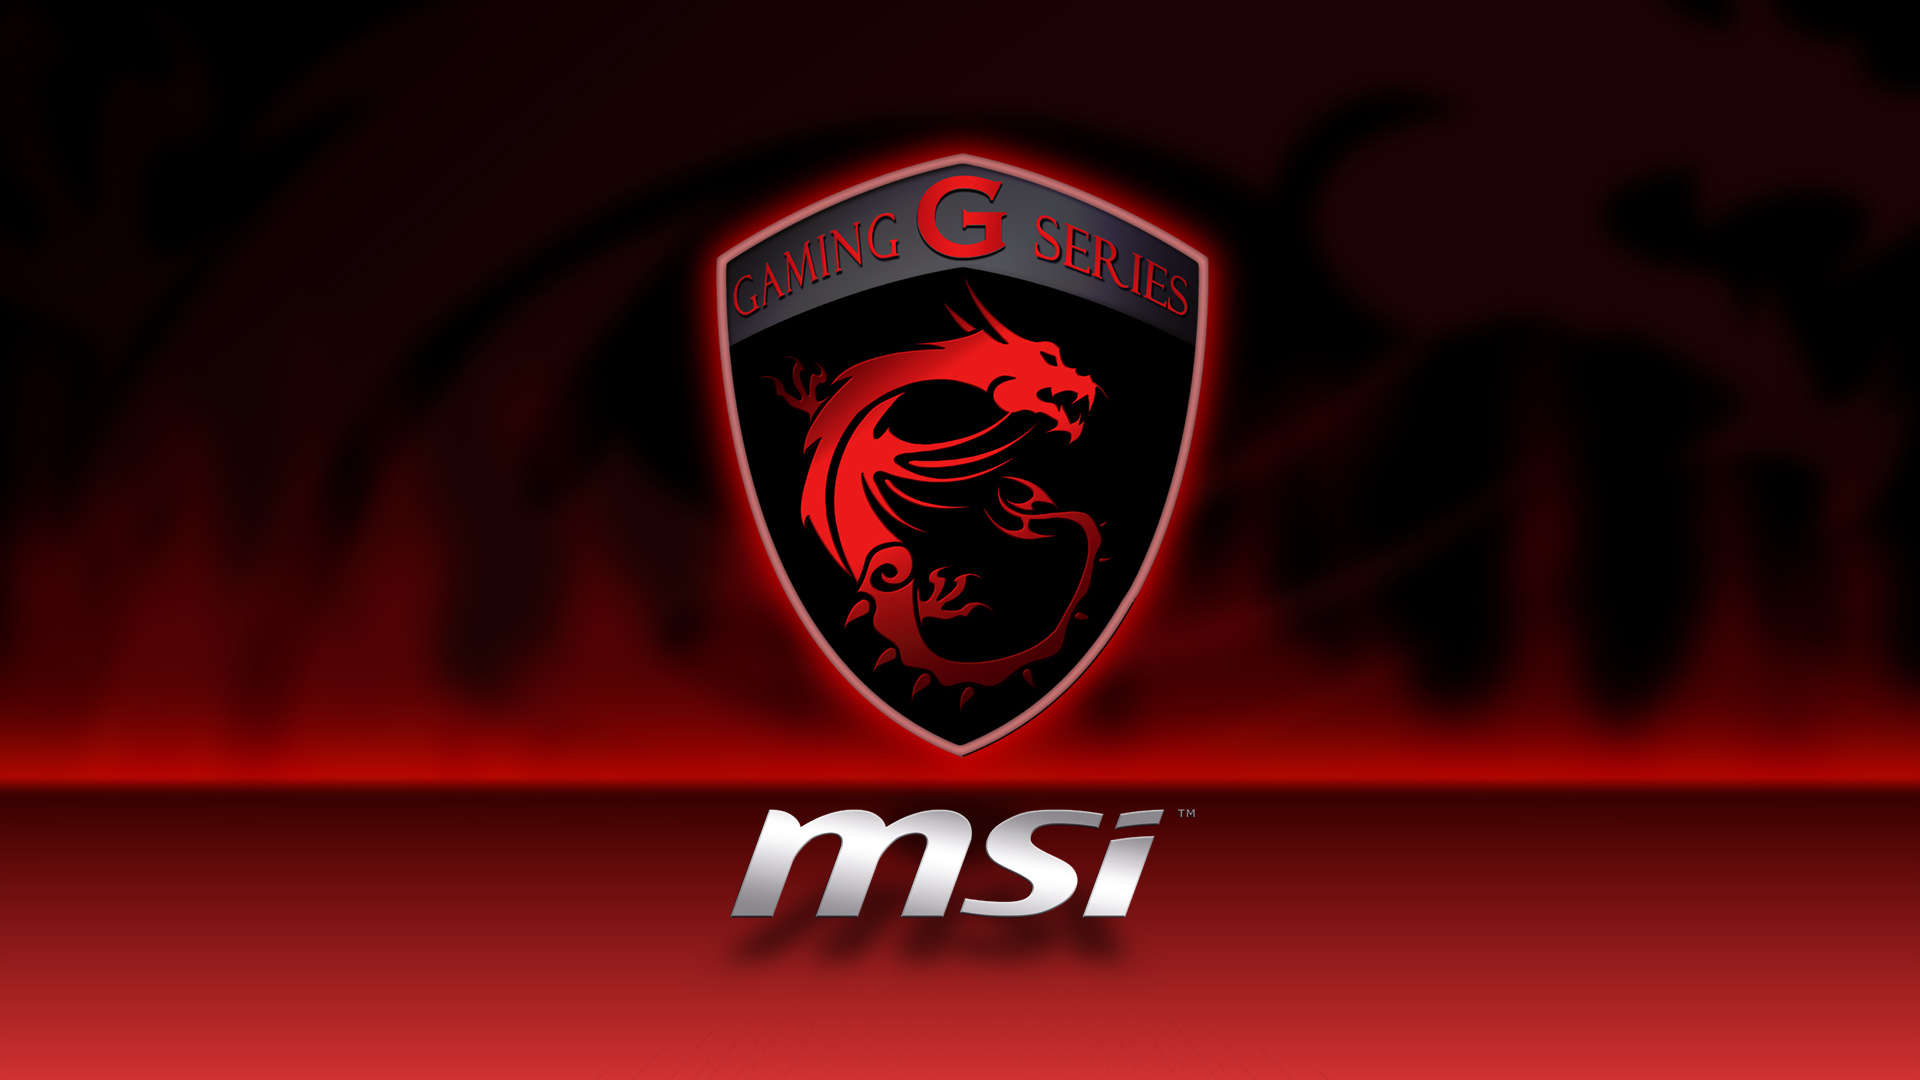 Msi Wallpaper Full Hd Awesome Msi Wallpaper Full Hd Pictures